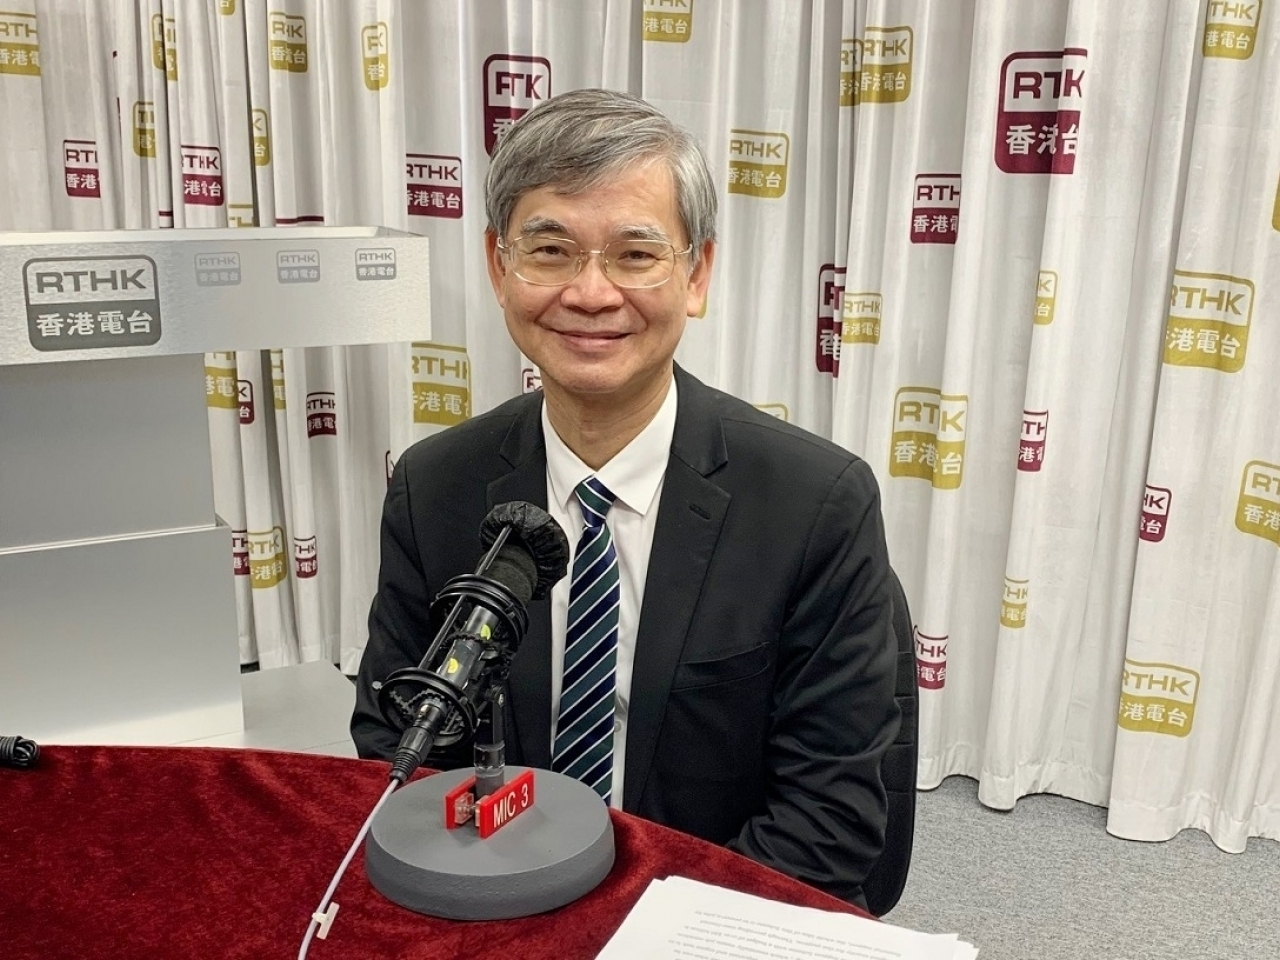 Labour Secretary Law Chi-kwong says authorities may investigate trade unions even if no complaints are made. File photo: RTHK